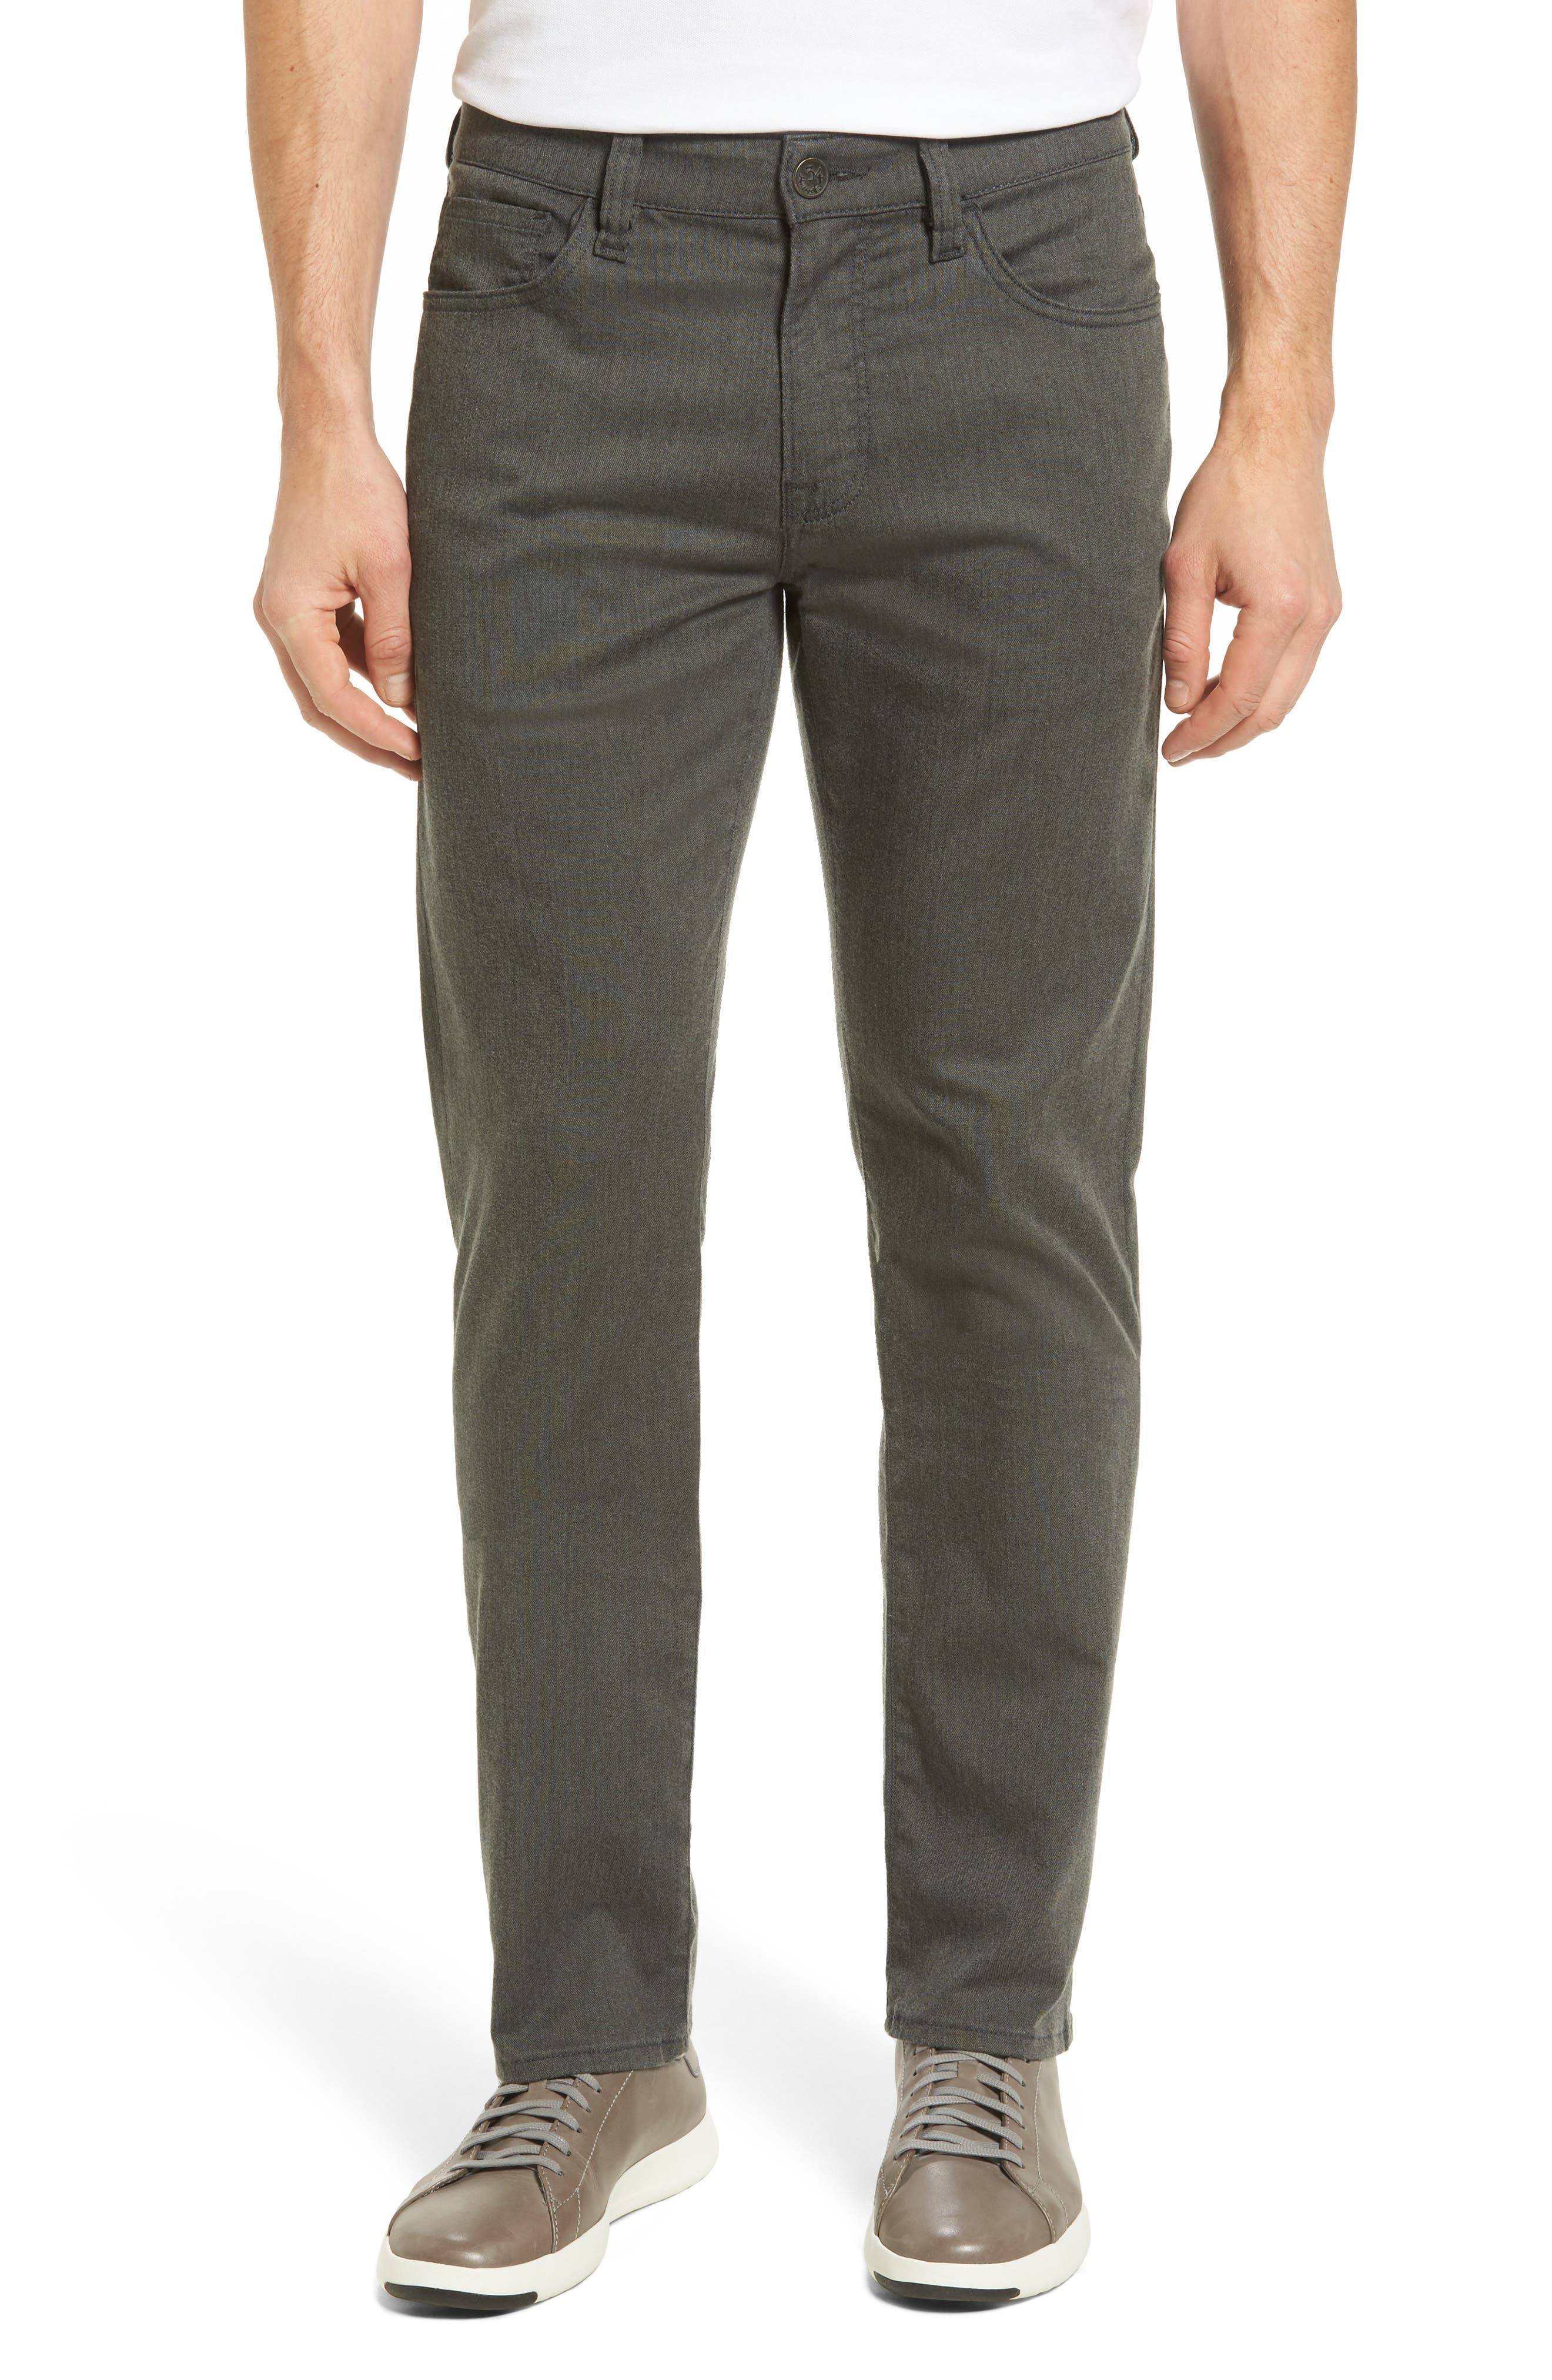 Courage Straight Leg Jeans,                         Main,                         color, Grey Luxe